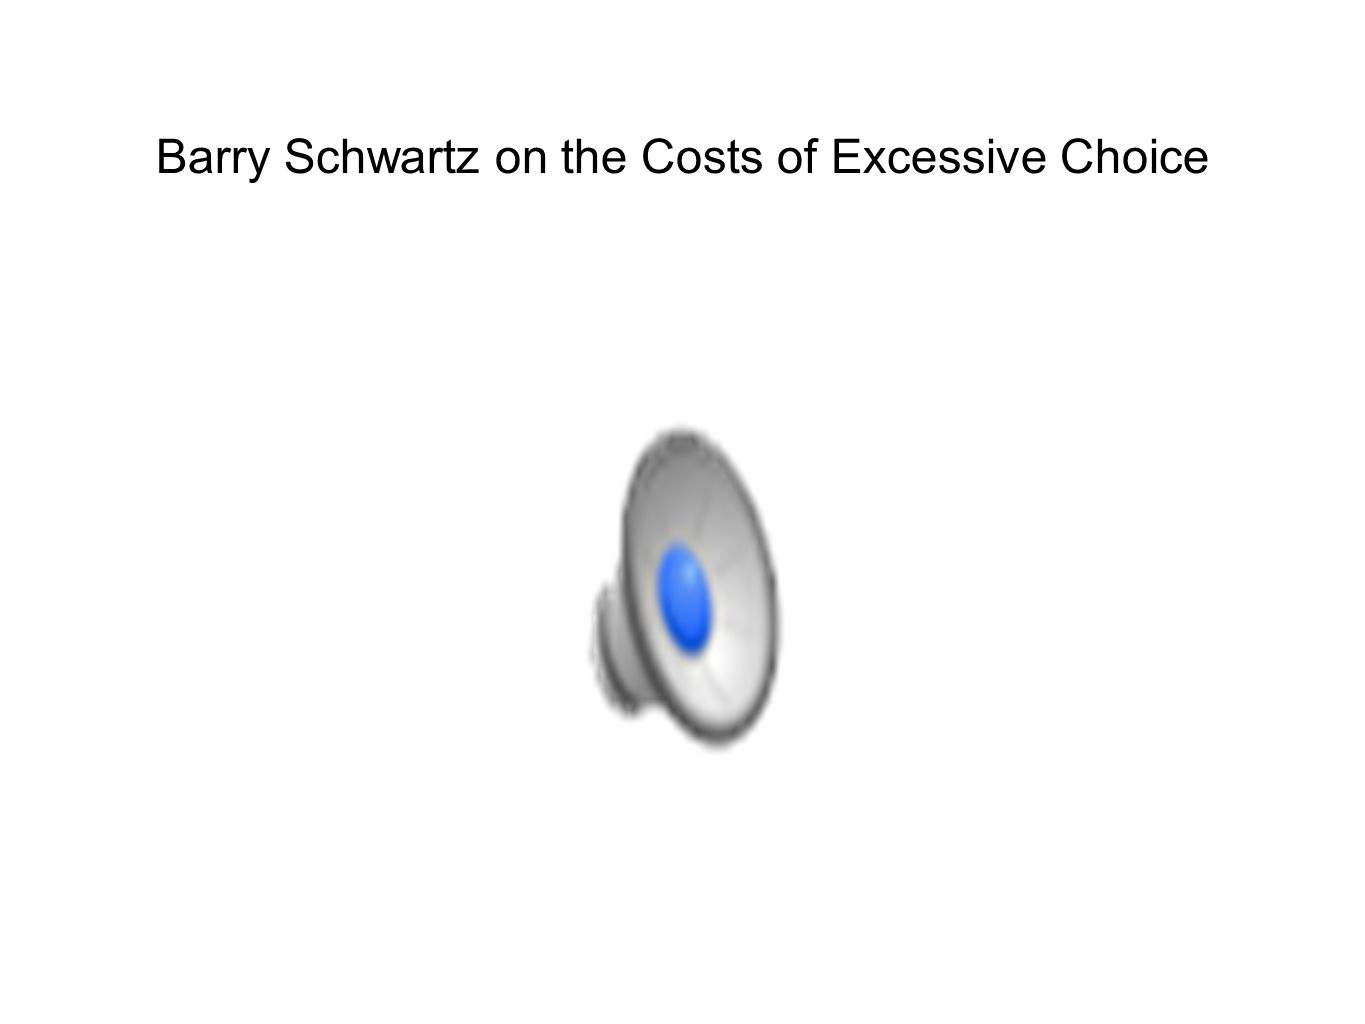 Barry Schwartz on the Costs of Excessive Choice